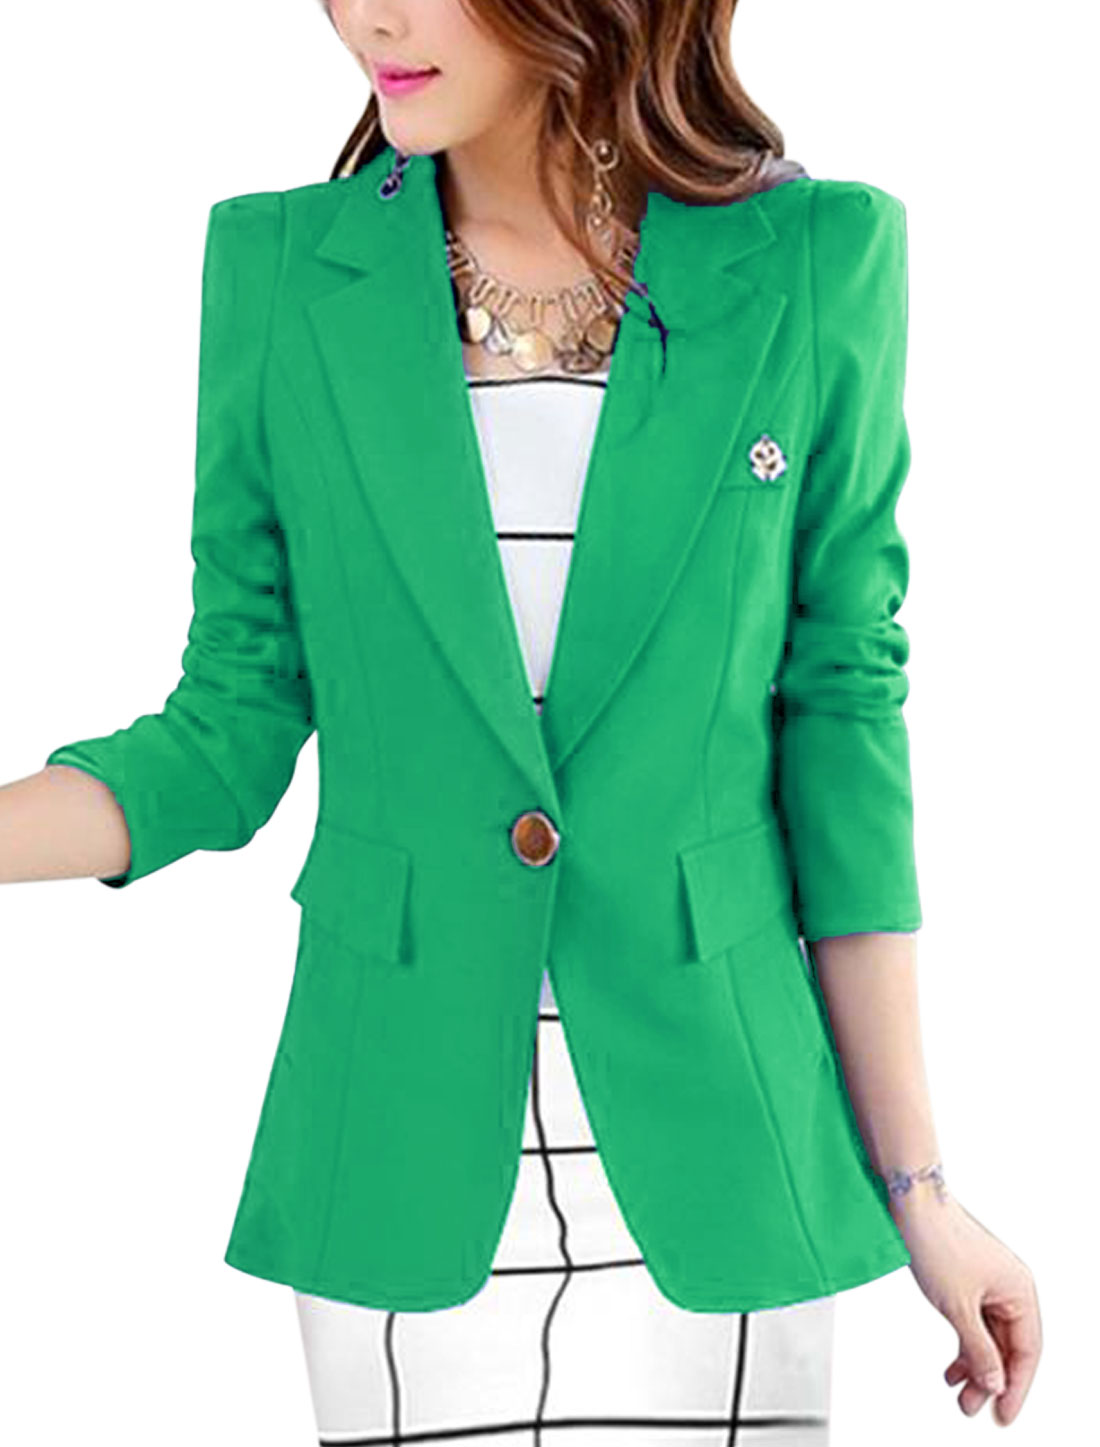 New Style Notched Lapel One Button Close Lining Blazer for Lady Green L